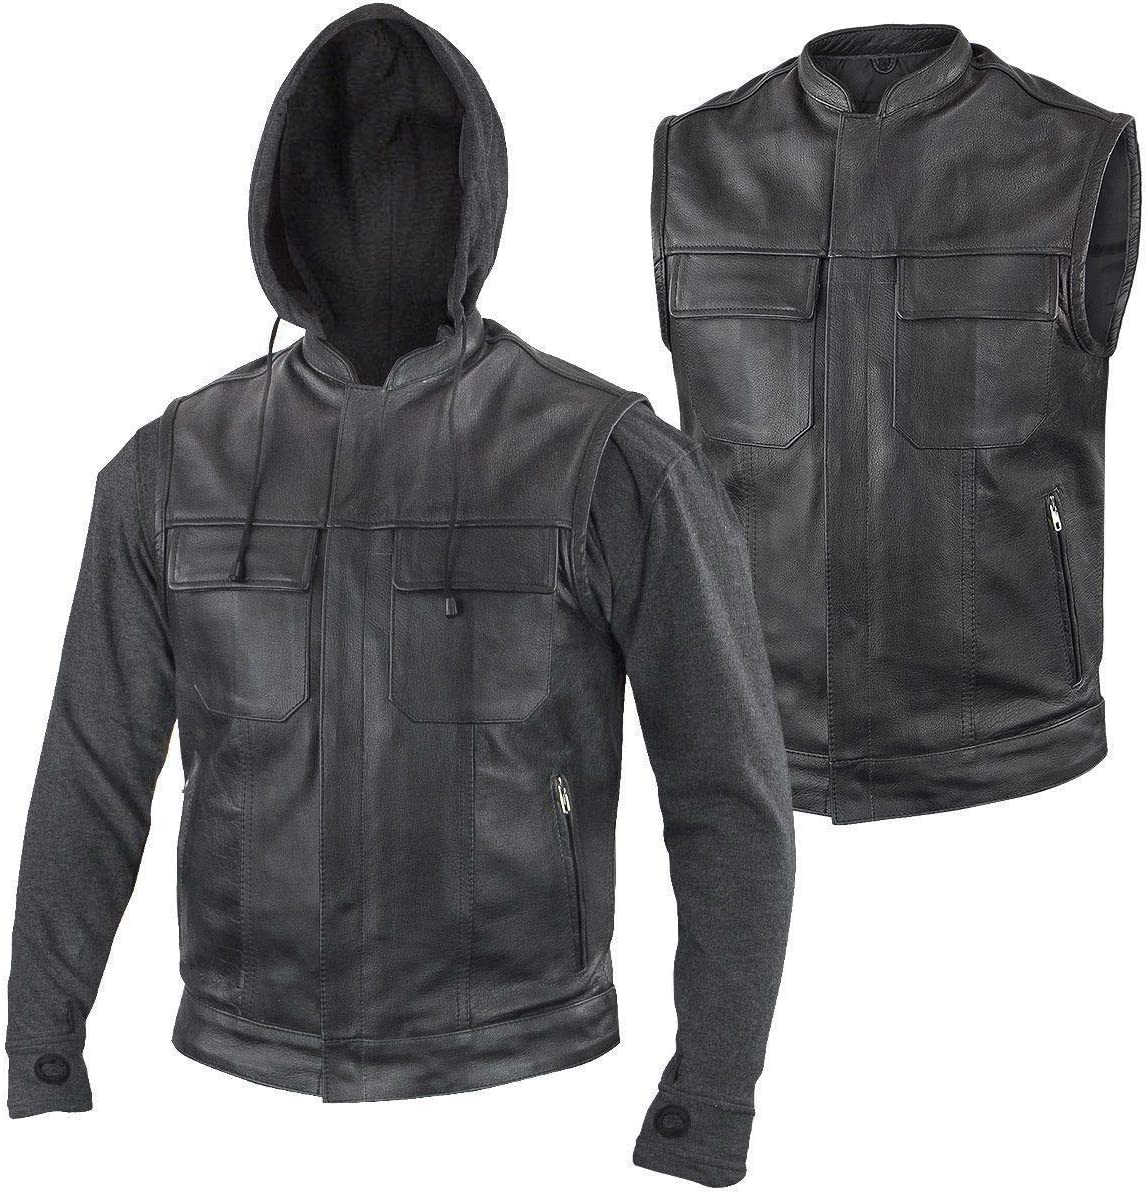 Xelement BXU1006 Men's 'Jax' Black Leather Motorcycle Hoodie Jacket with Convertible Vest - 3X-Large